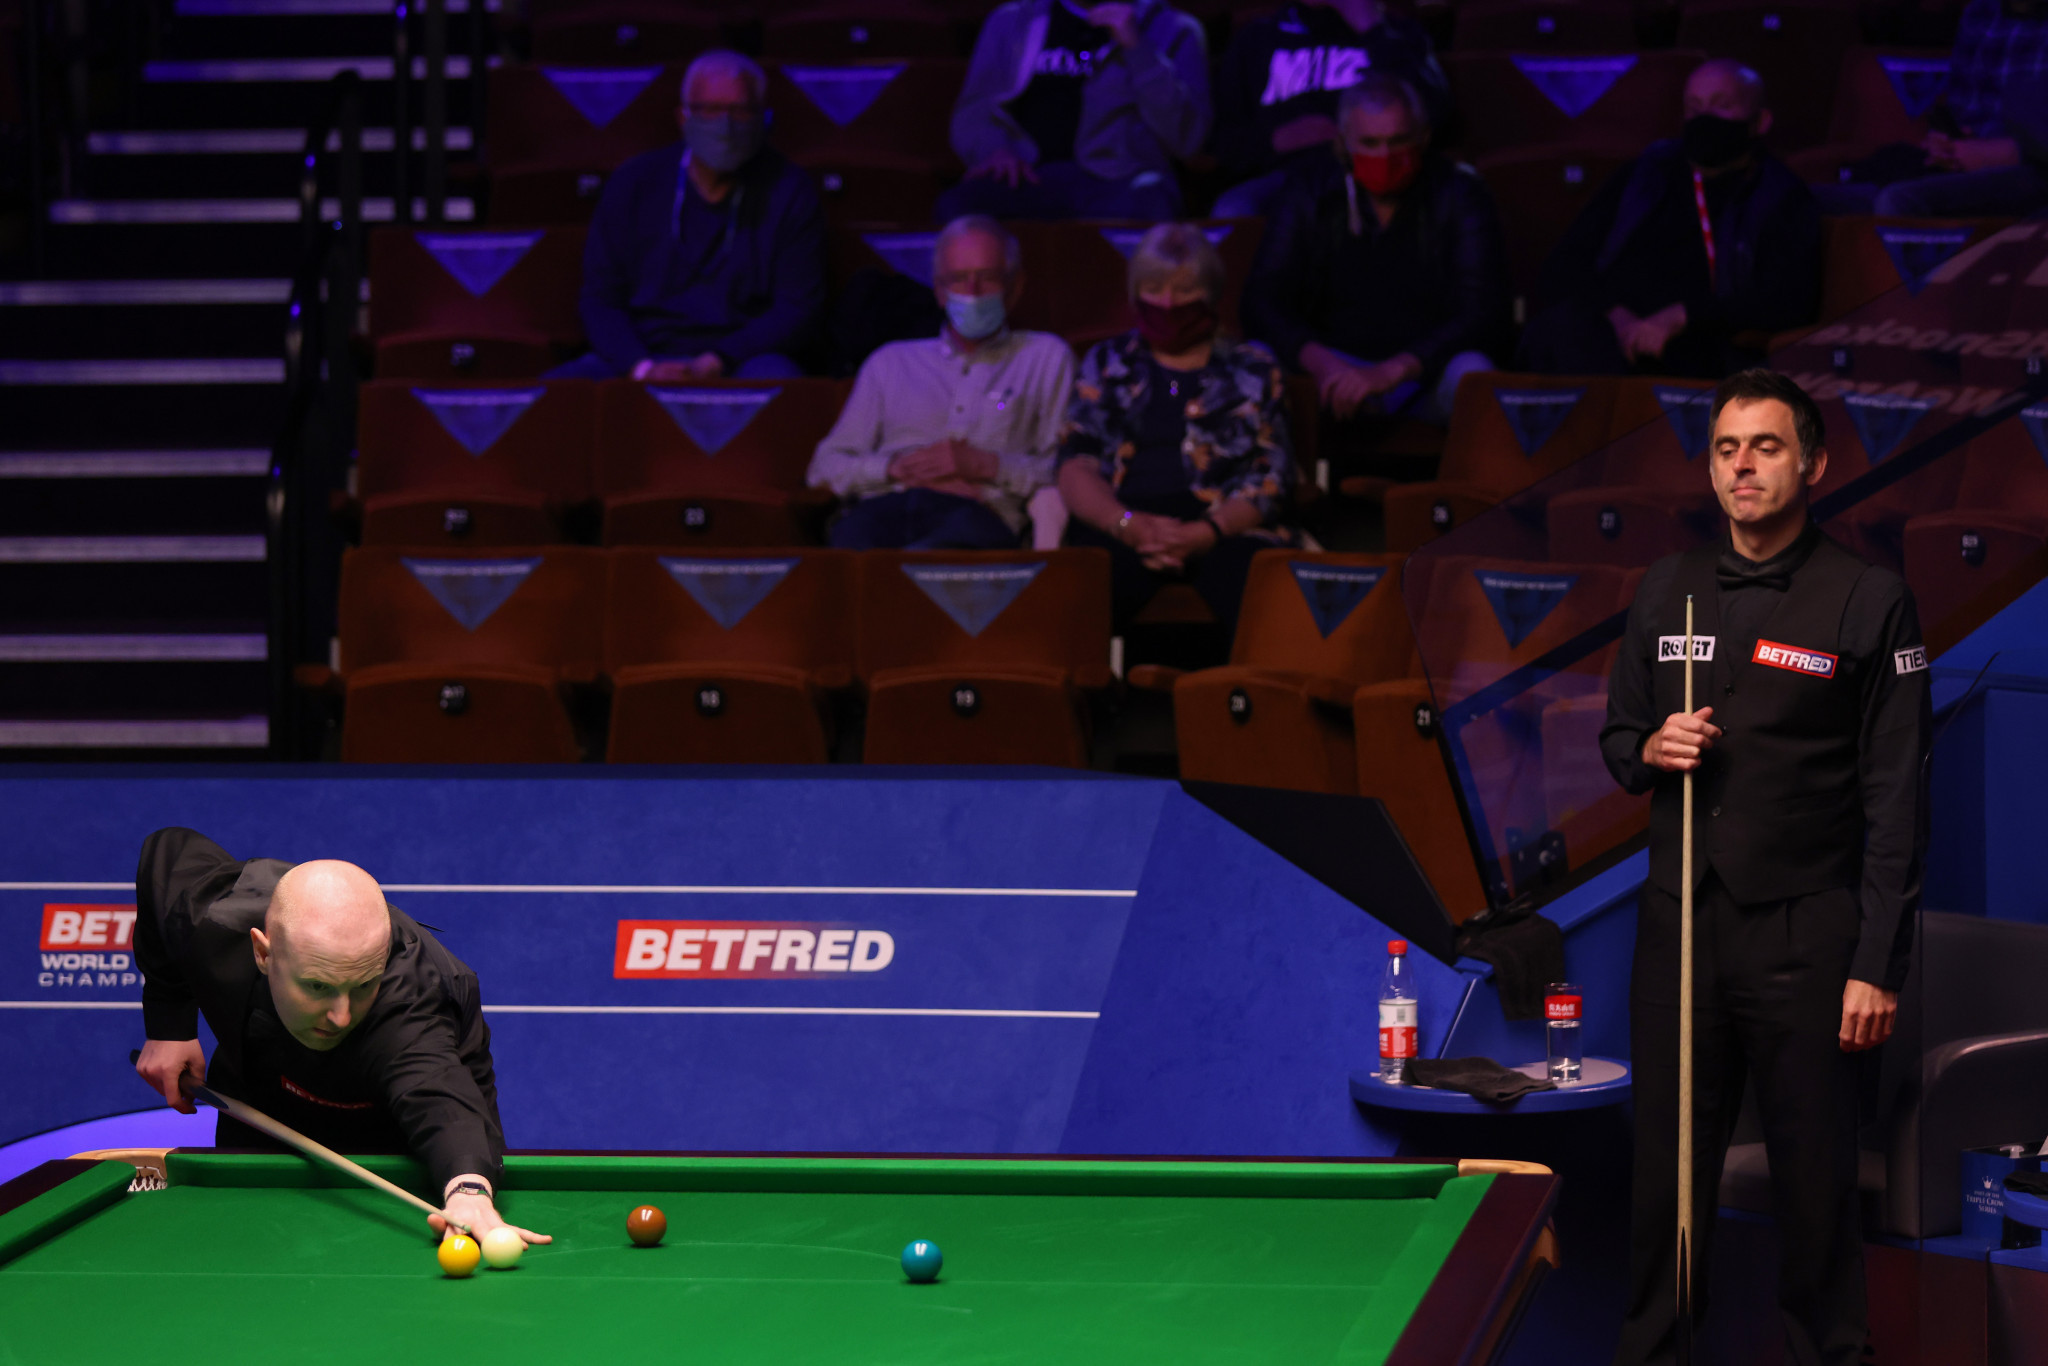 McGill knocks out defending champion O'Sullivan in dramatic decider at World Snooker Championship